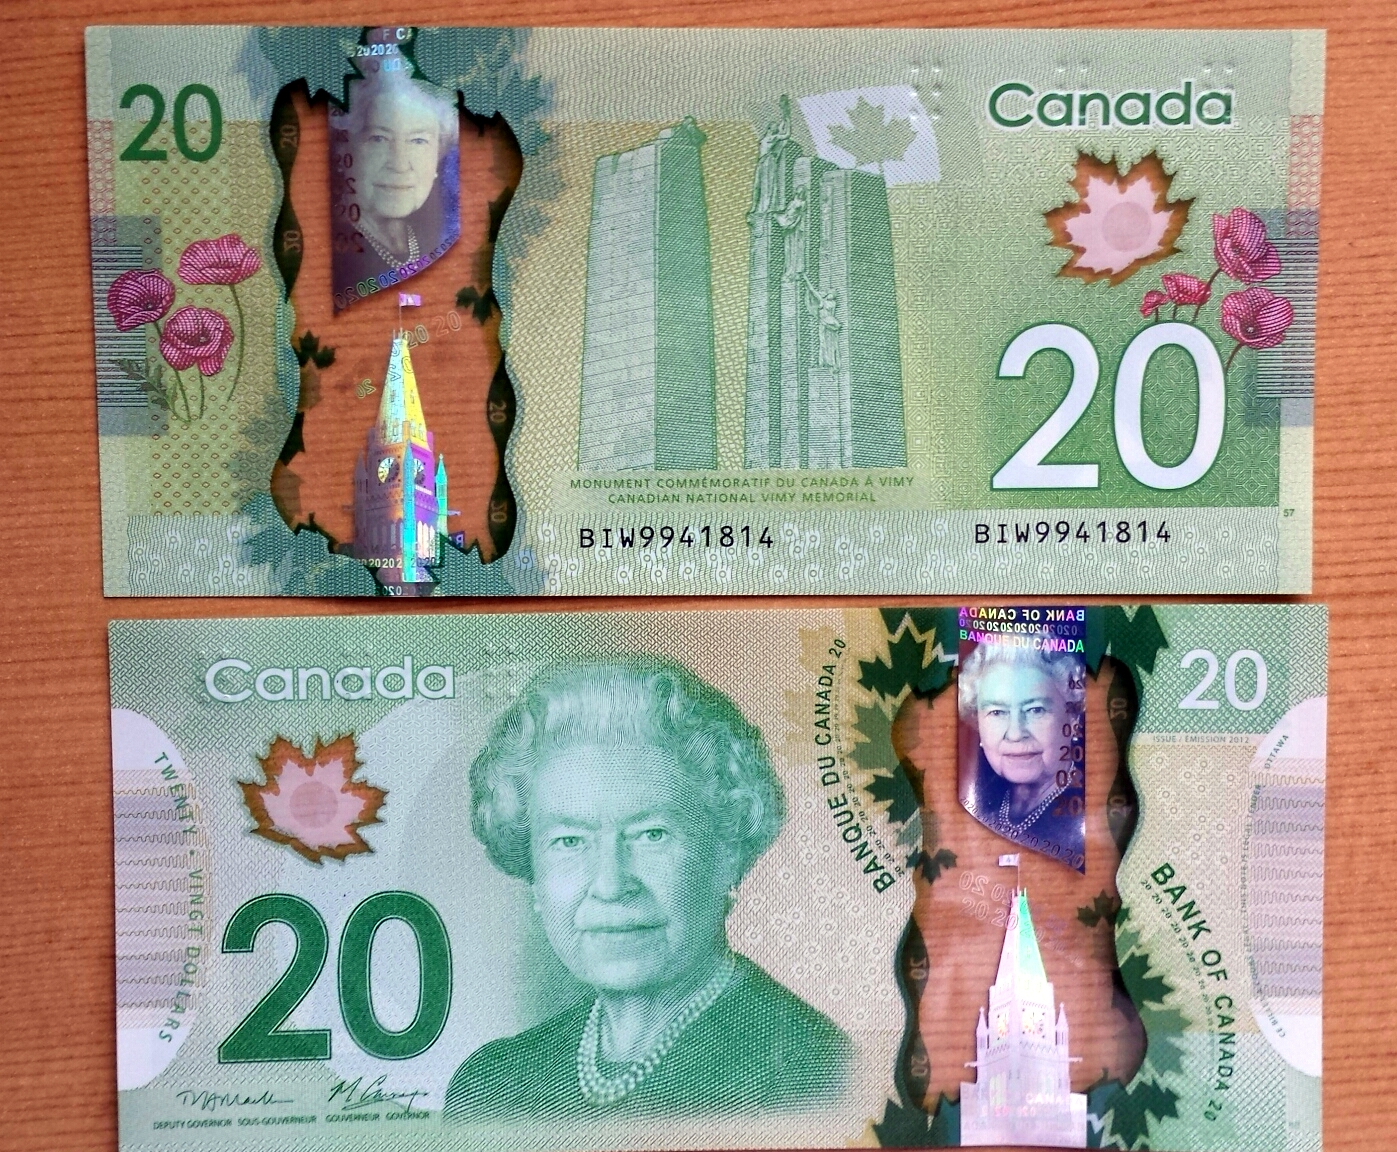 Canadian money $20 bill with protections against counterfeiting